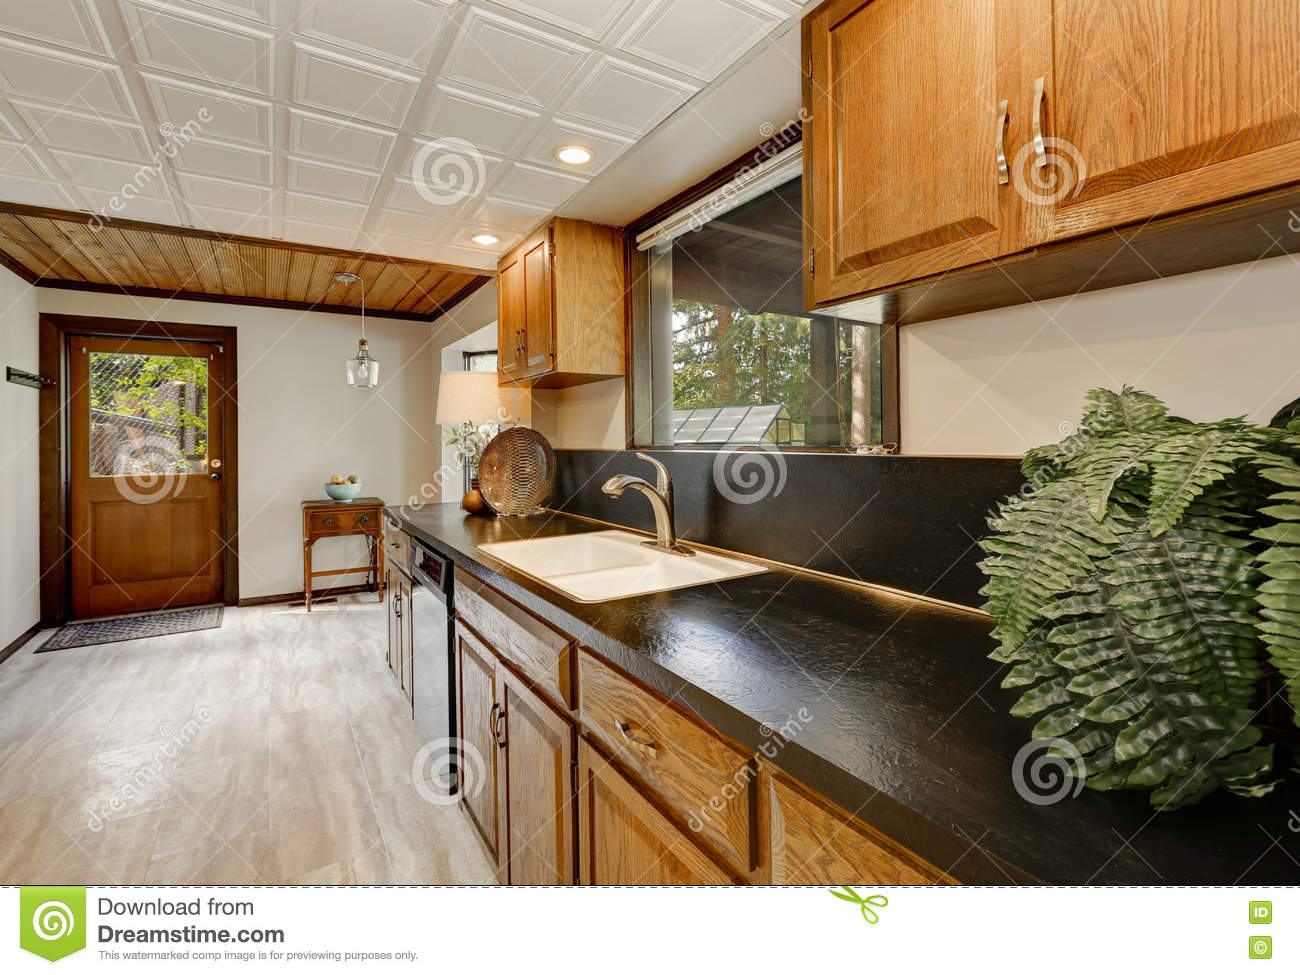 Kitchen Counter Close Up kitchen counter close up black and white stock illustration